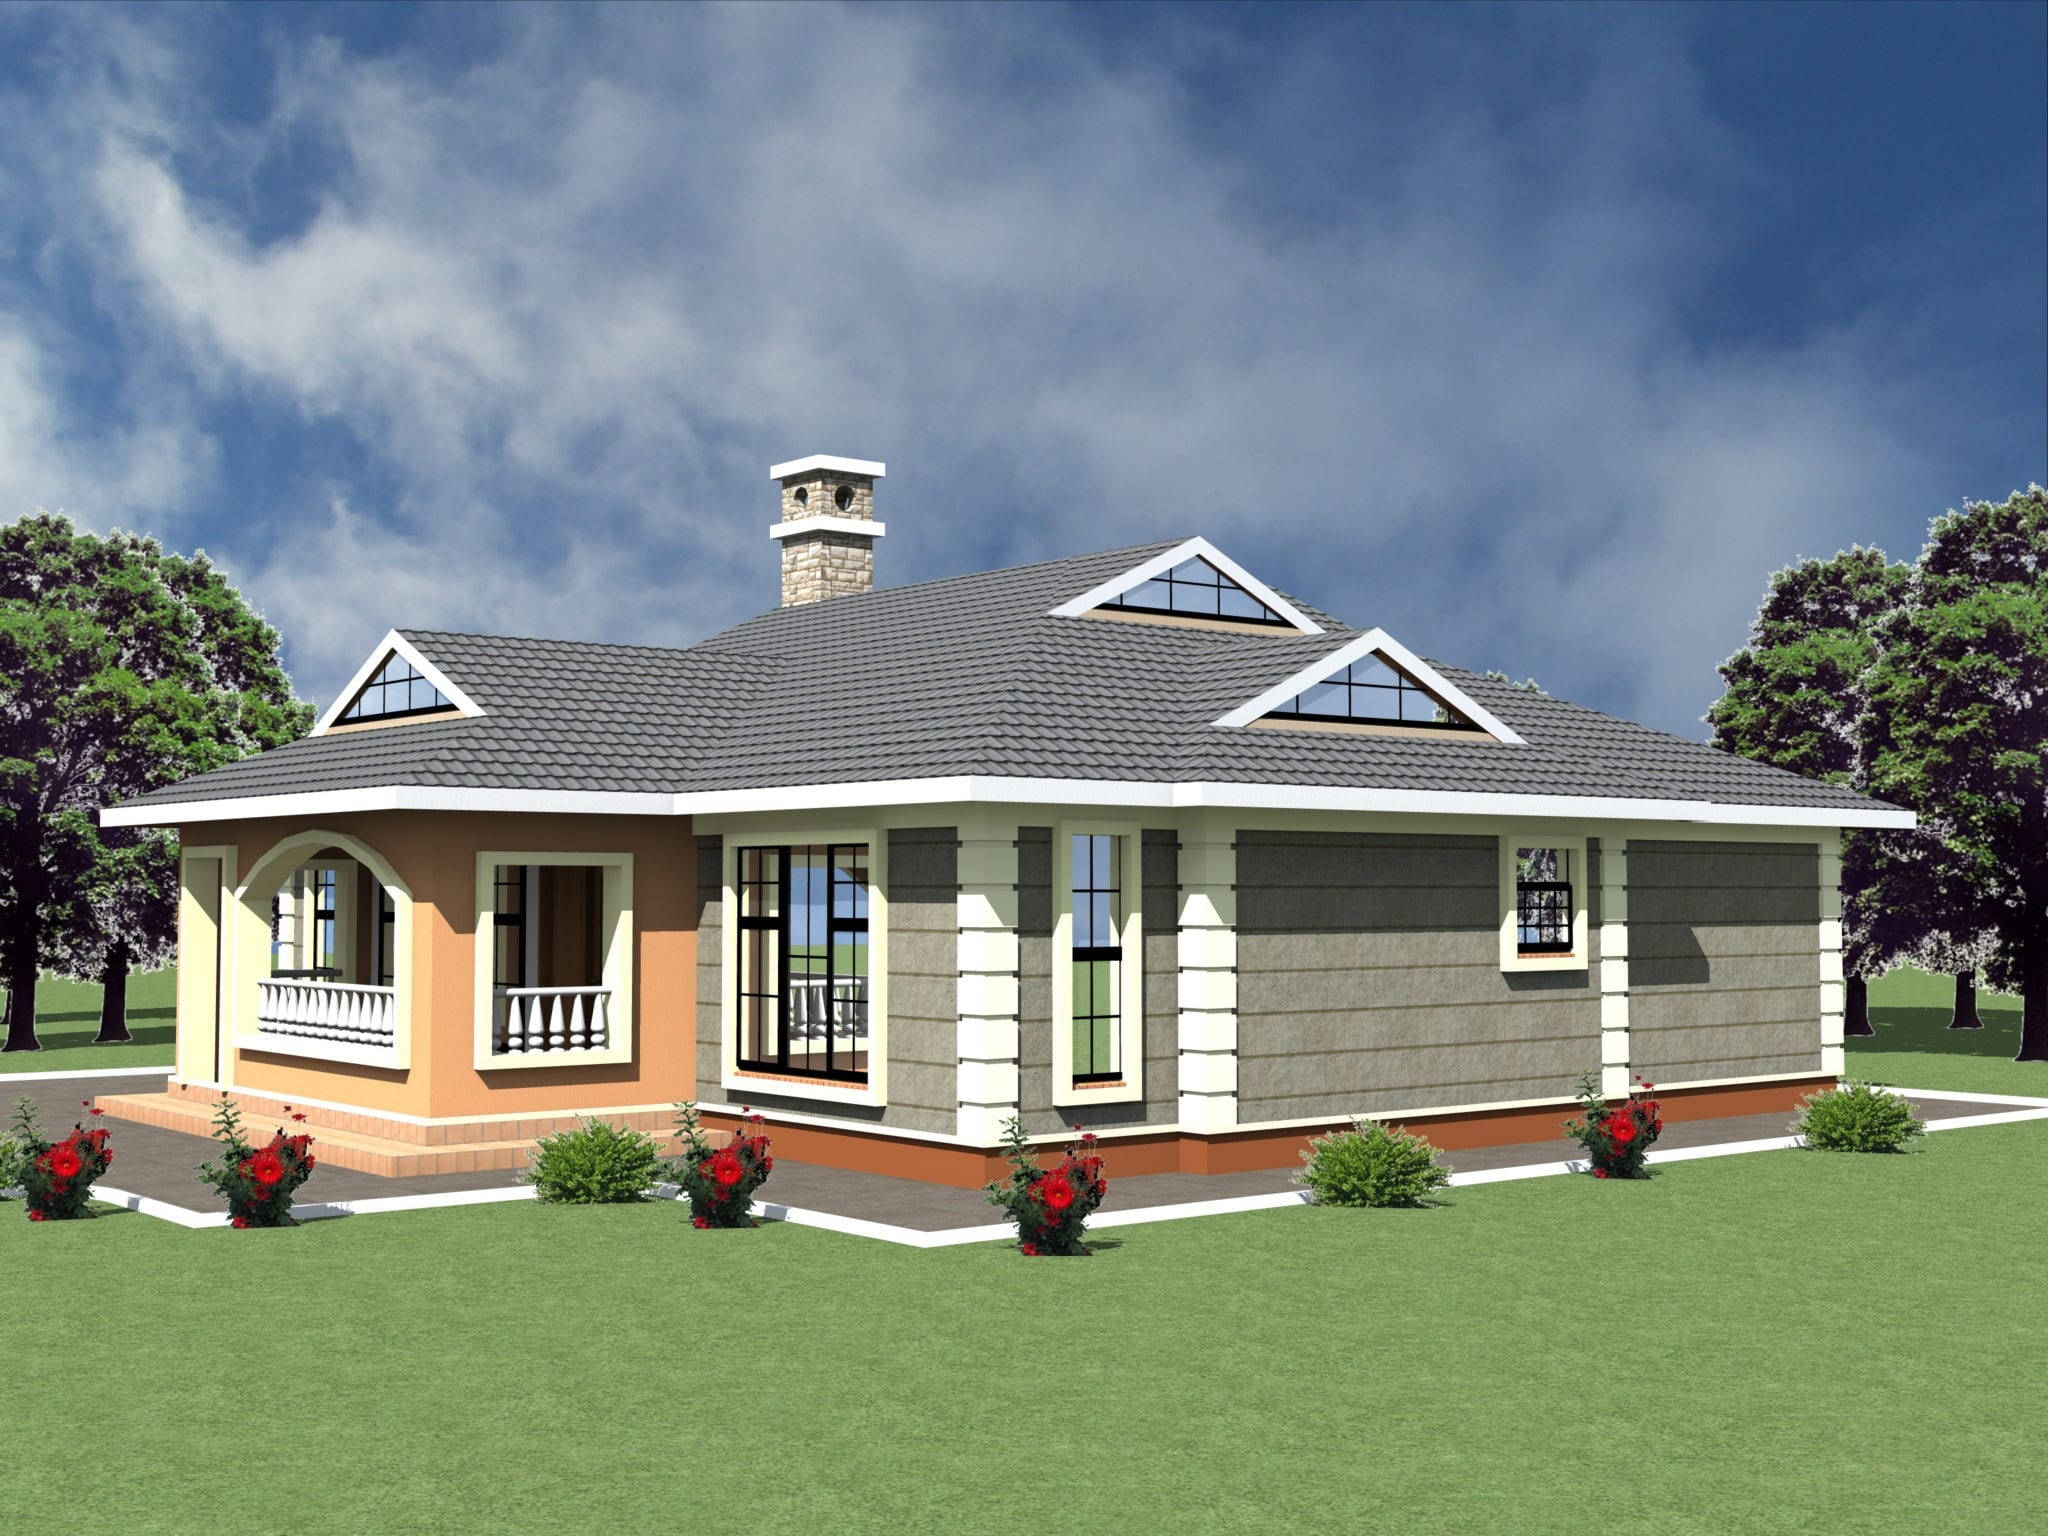 Simple spacious 3 bedroom house designs | HPD Consult